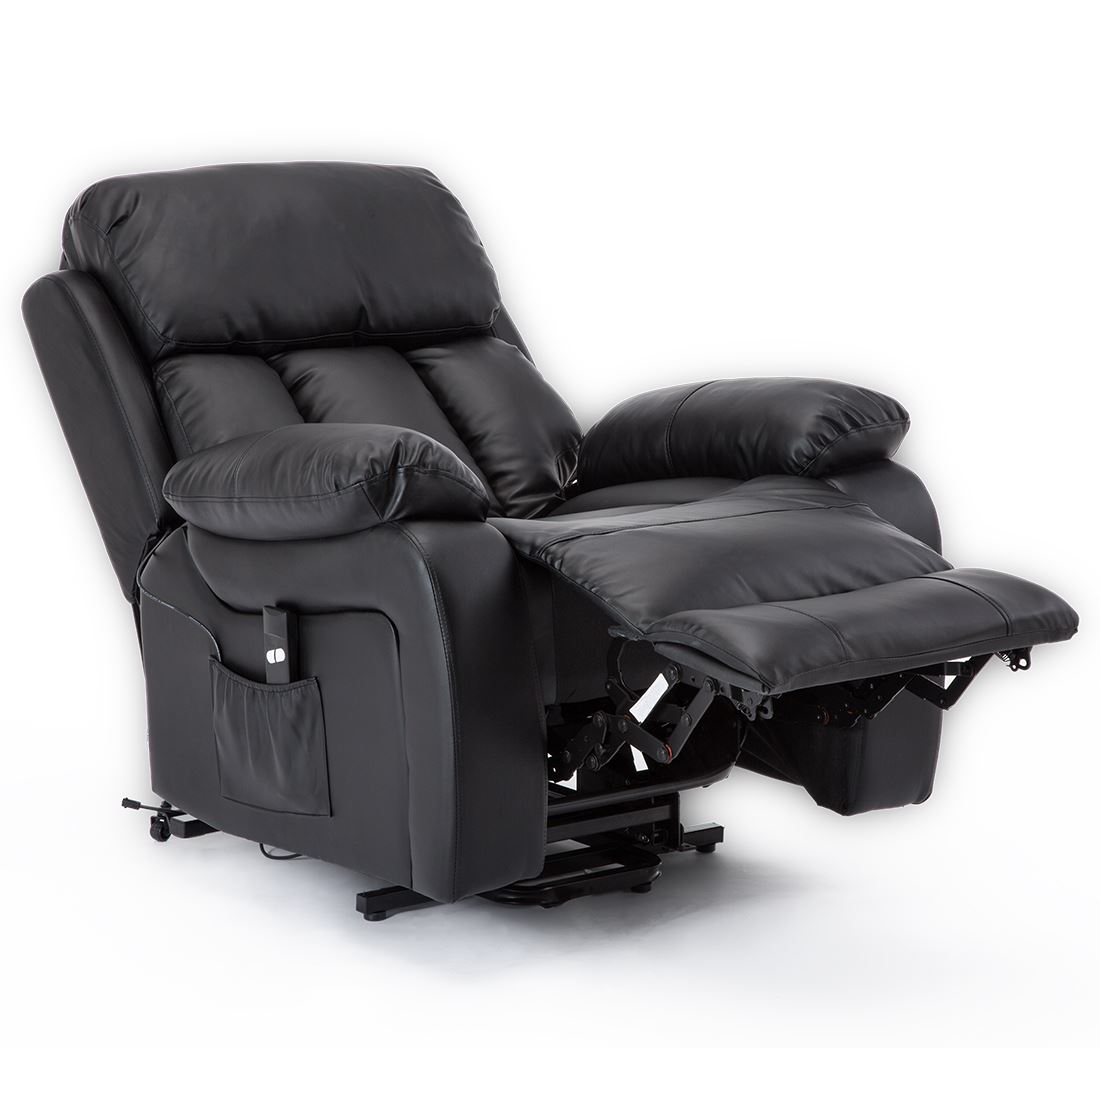 CHESTER-ELECTRIC-RISE-LEATHER-RECLINER-POWER-ARMCHAIR-HEATED-MASSAGE-SOFA-CHAIR thumbnail 7